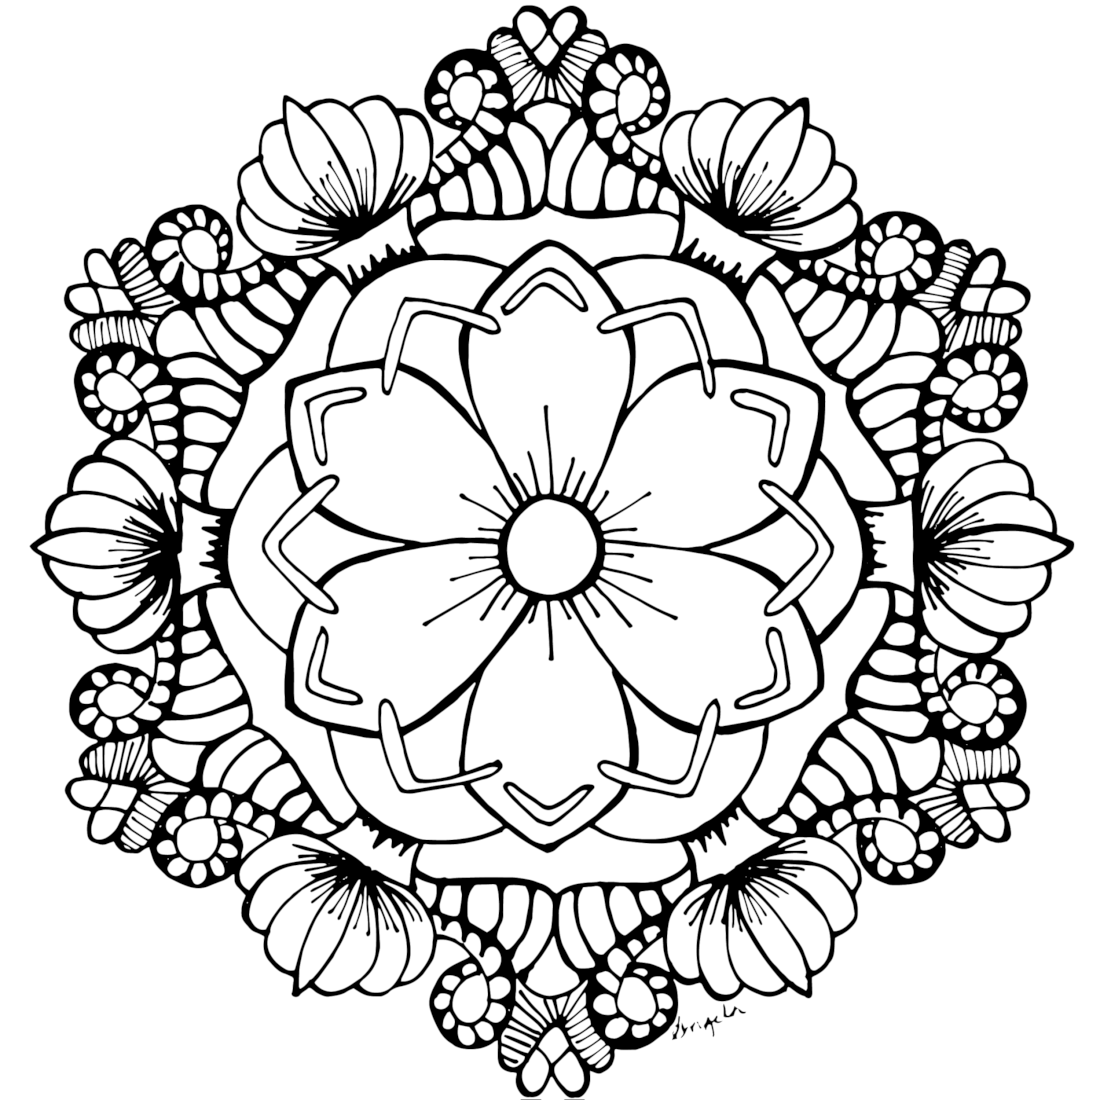 coloring pages for adults flowers very detailed flowers coloring pages for adults hard to flowers for pages adults coloring